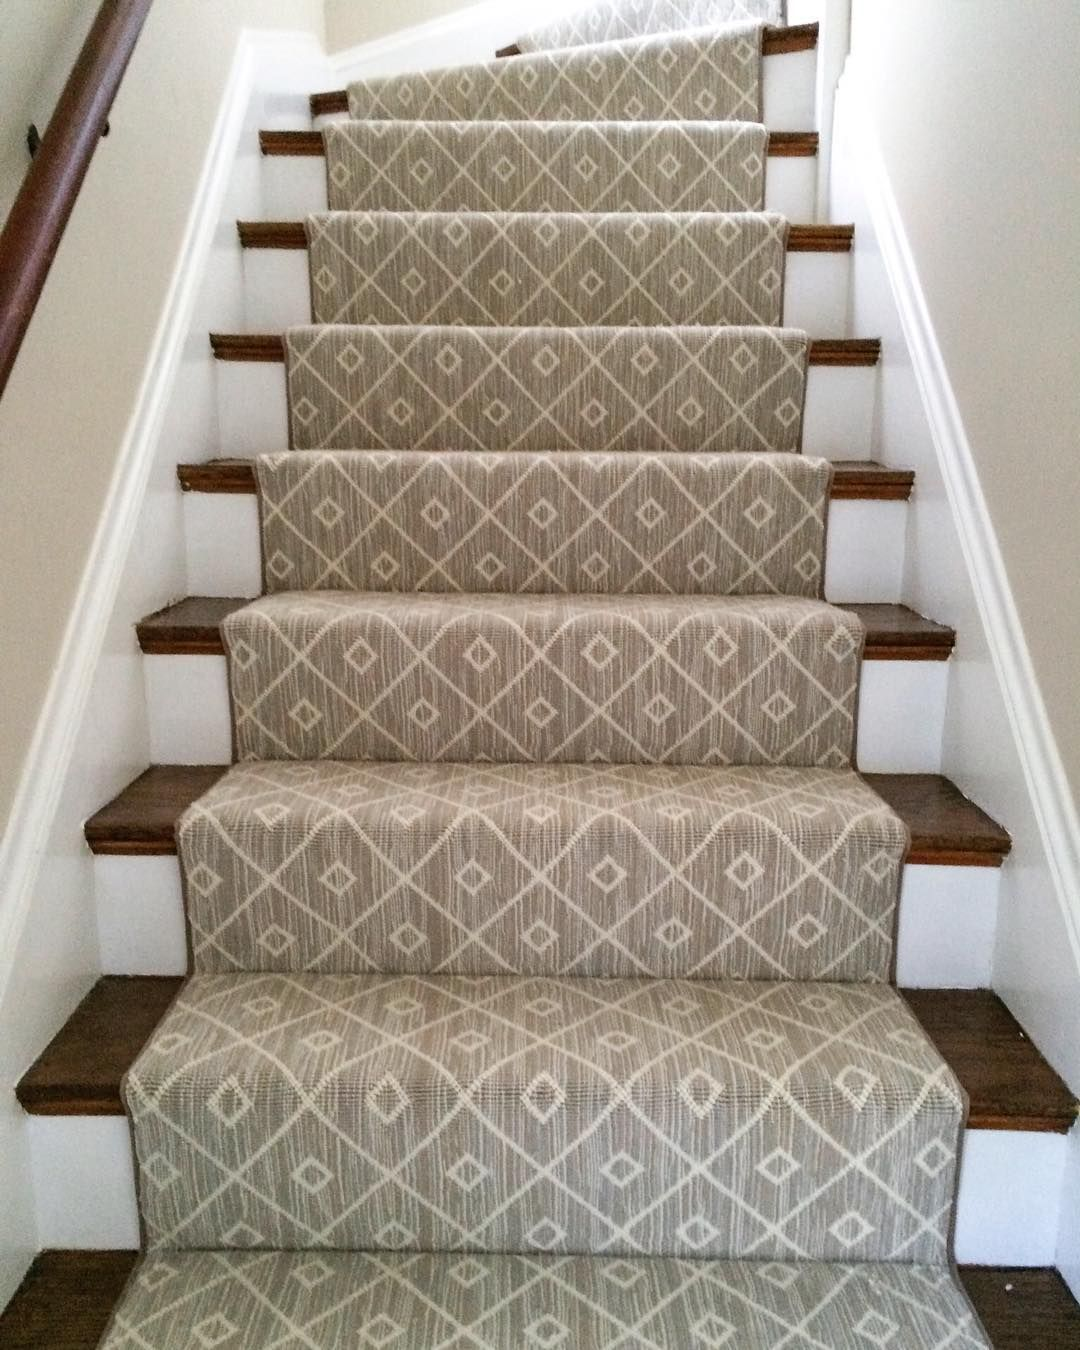 Mia, A Woven 100% Wool Carpet, Makes For A #beautiful Stair Runner